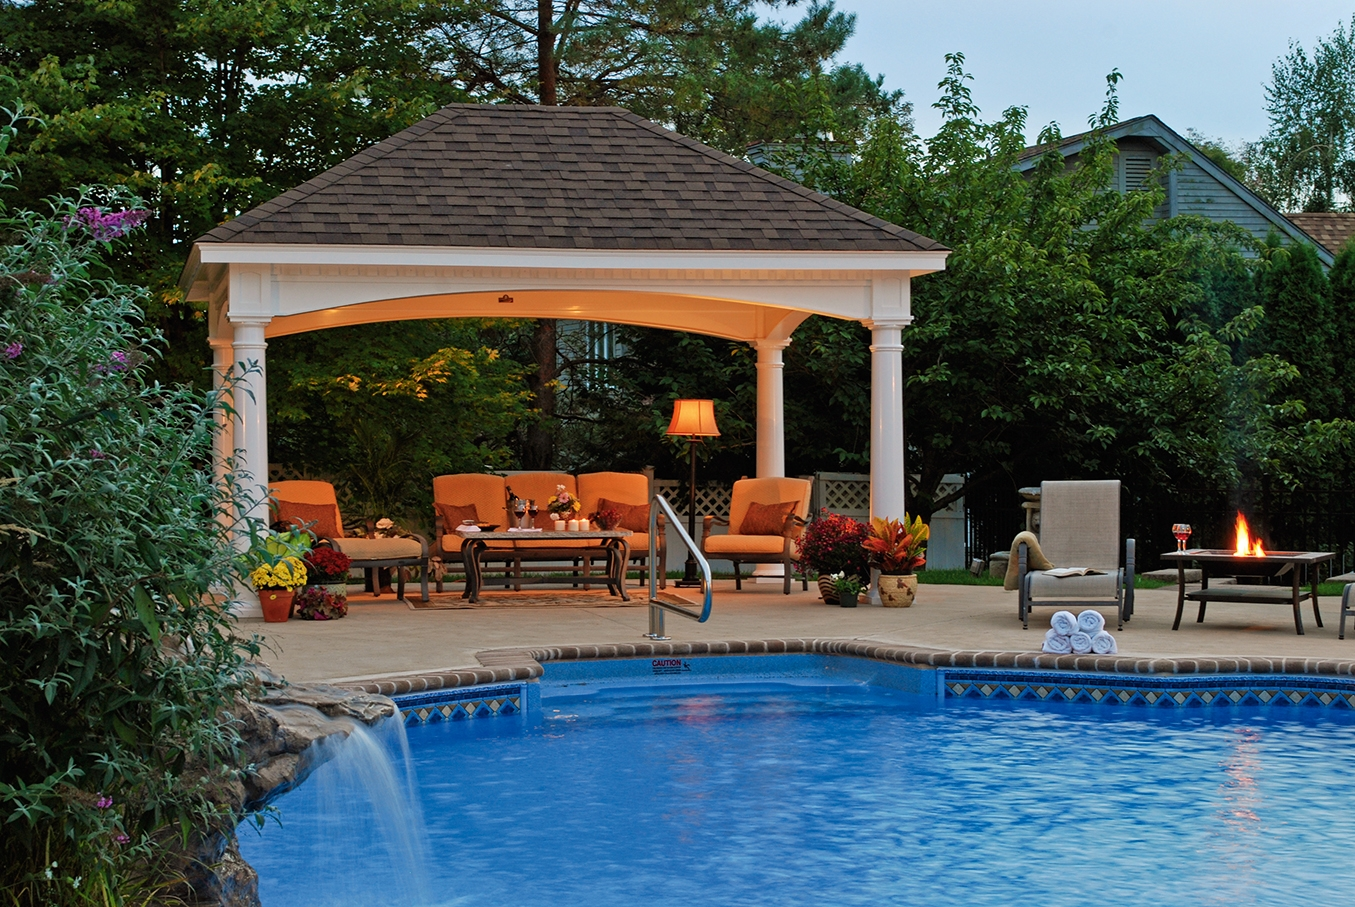 Outdoor pavilion plans that offer a pleasant relaxing time Pool design plans